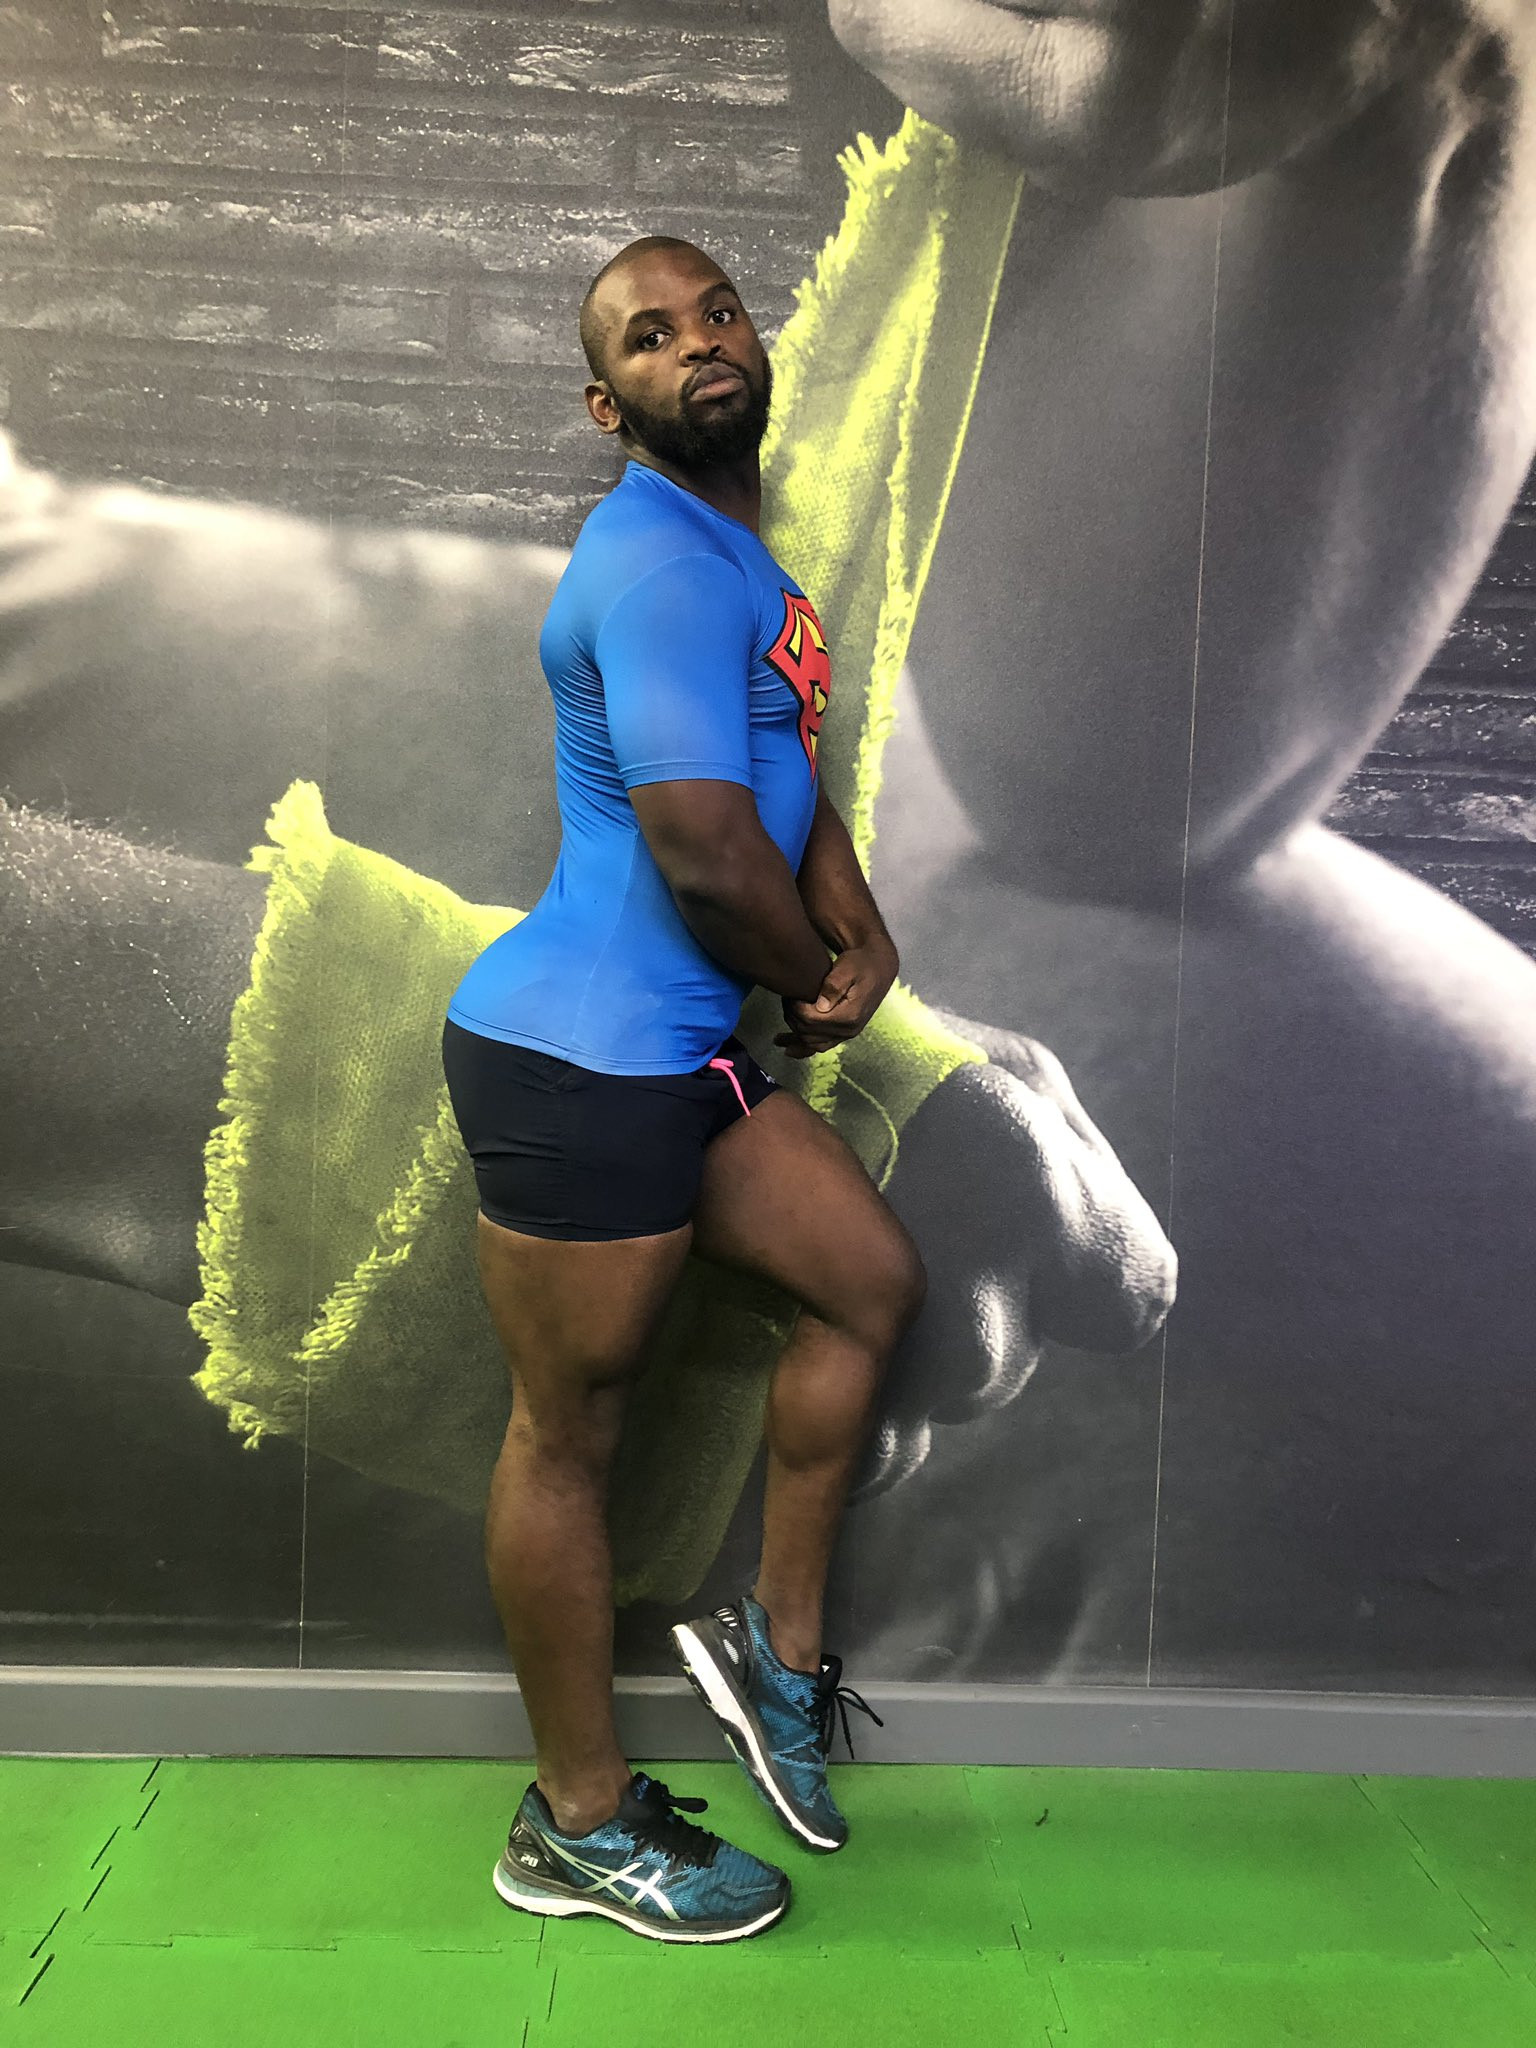 Photos: South African comedian mimics ladies in hilarious pose